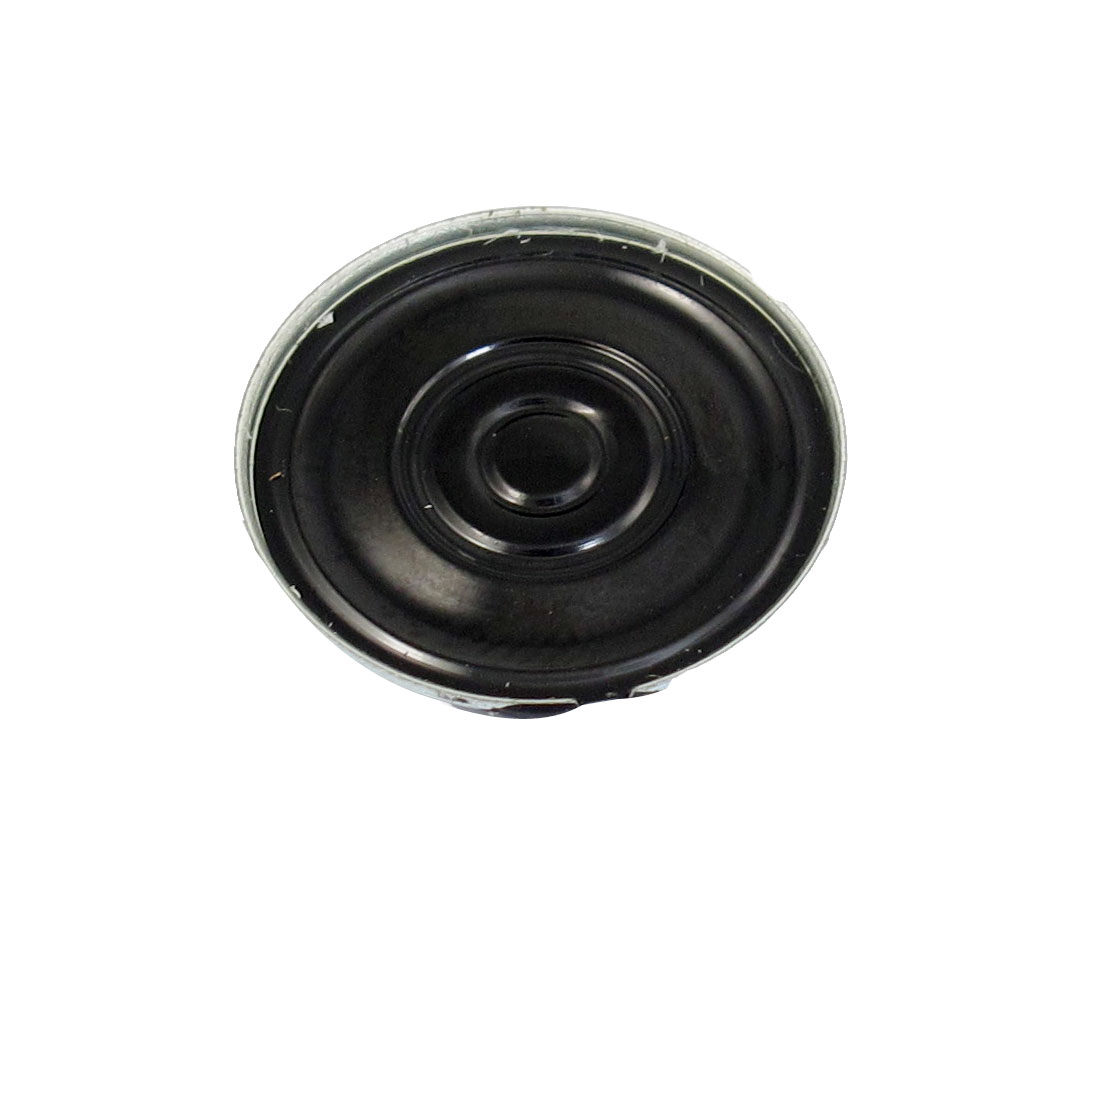 "Round Slim 8 Ohm 0.25W Internal Magnet Speaker Horn 0.79"" for Electronic Toys"